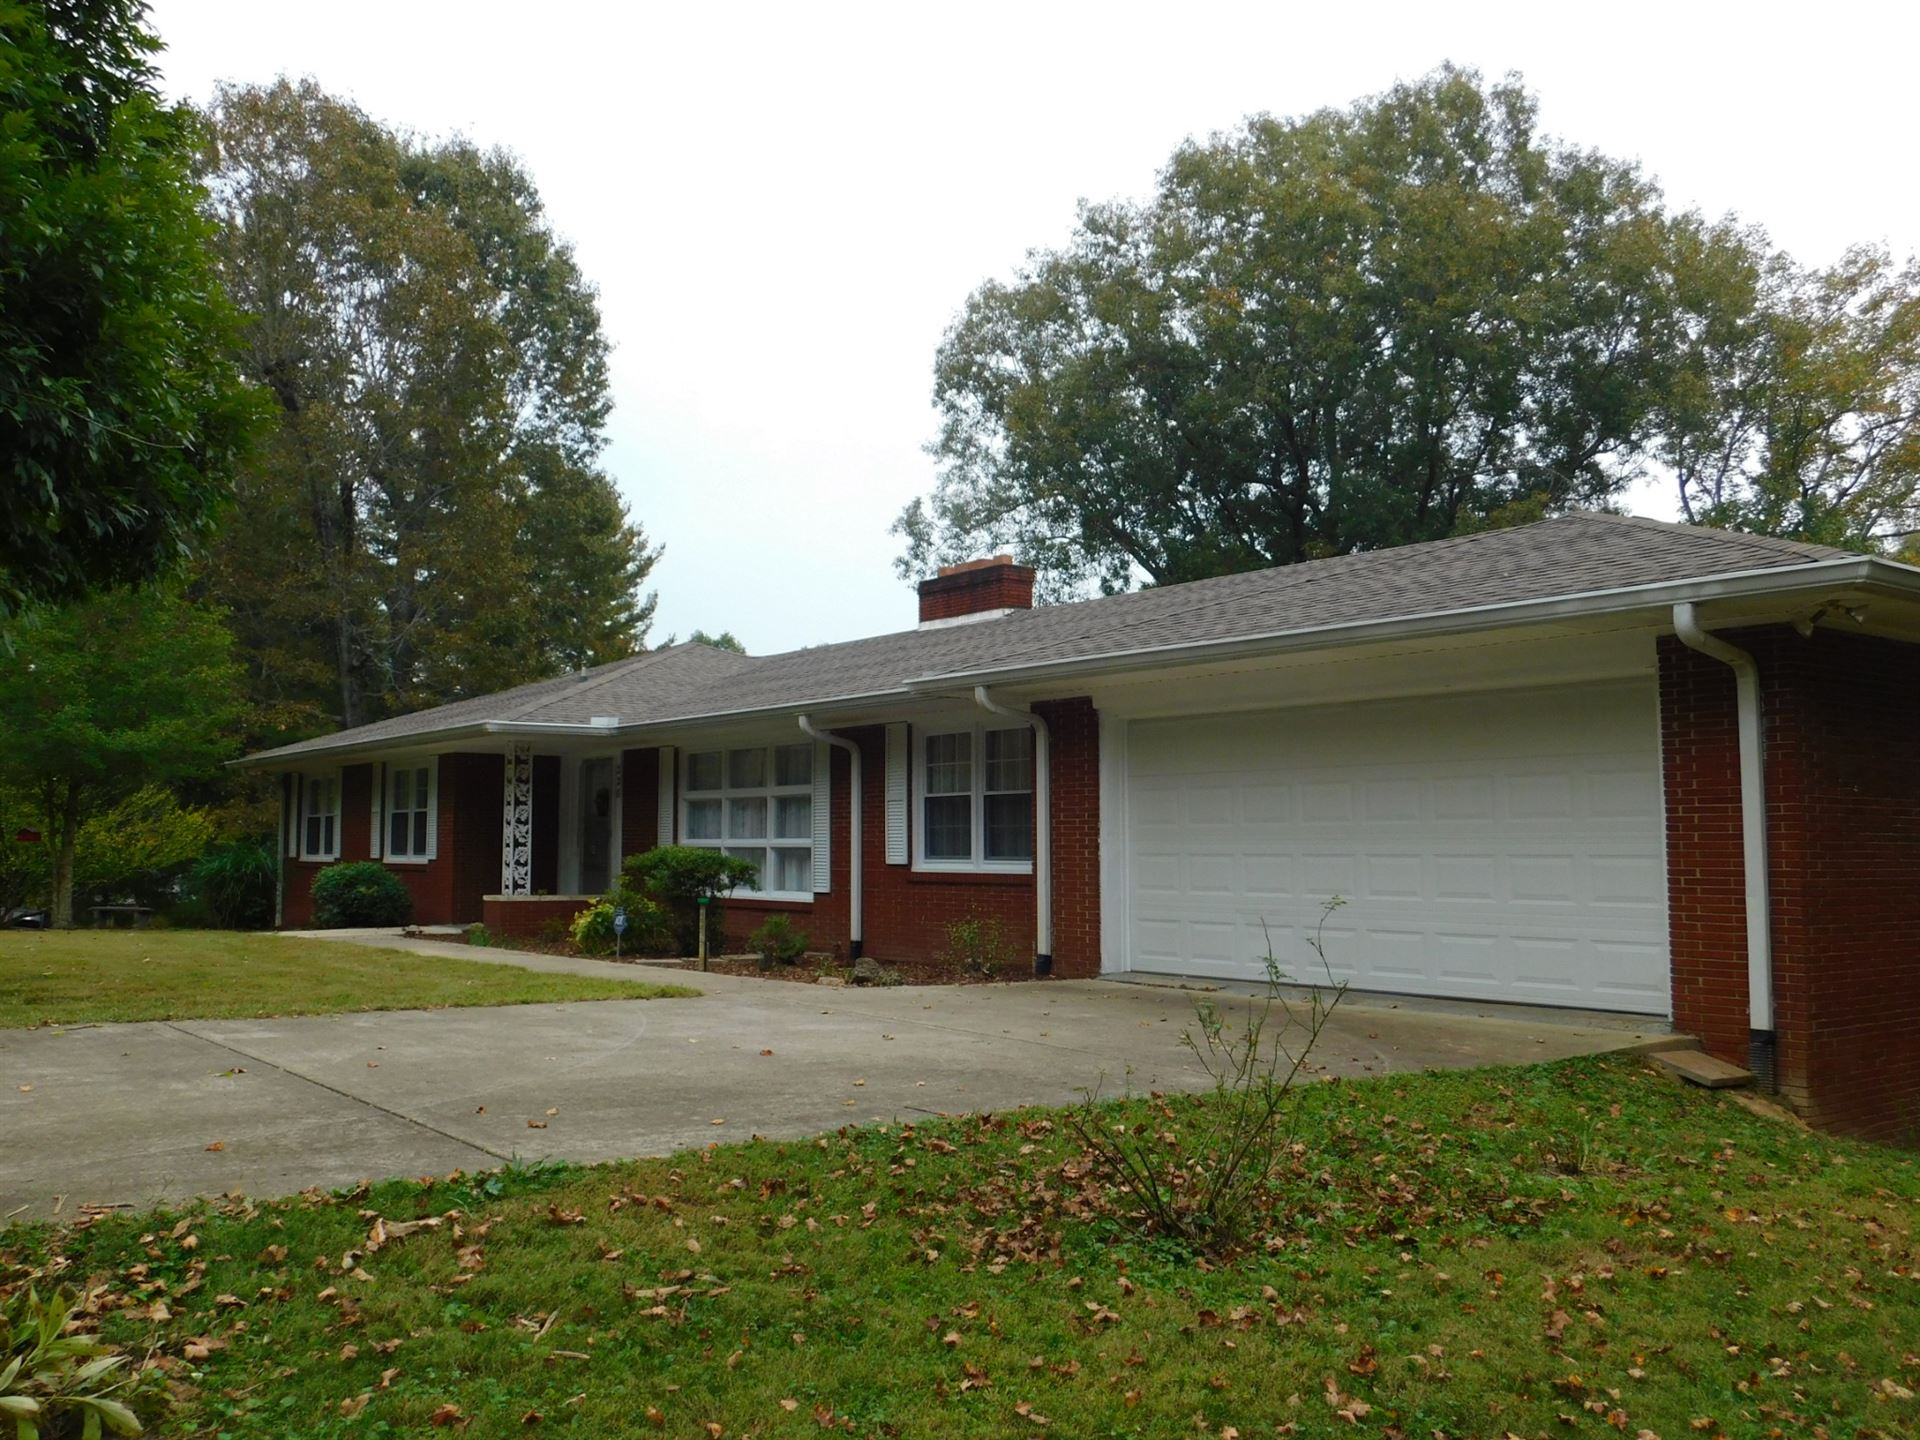 228 Valley View Rd, Dover, TN 37058 - MLS#: 2208500